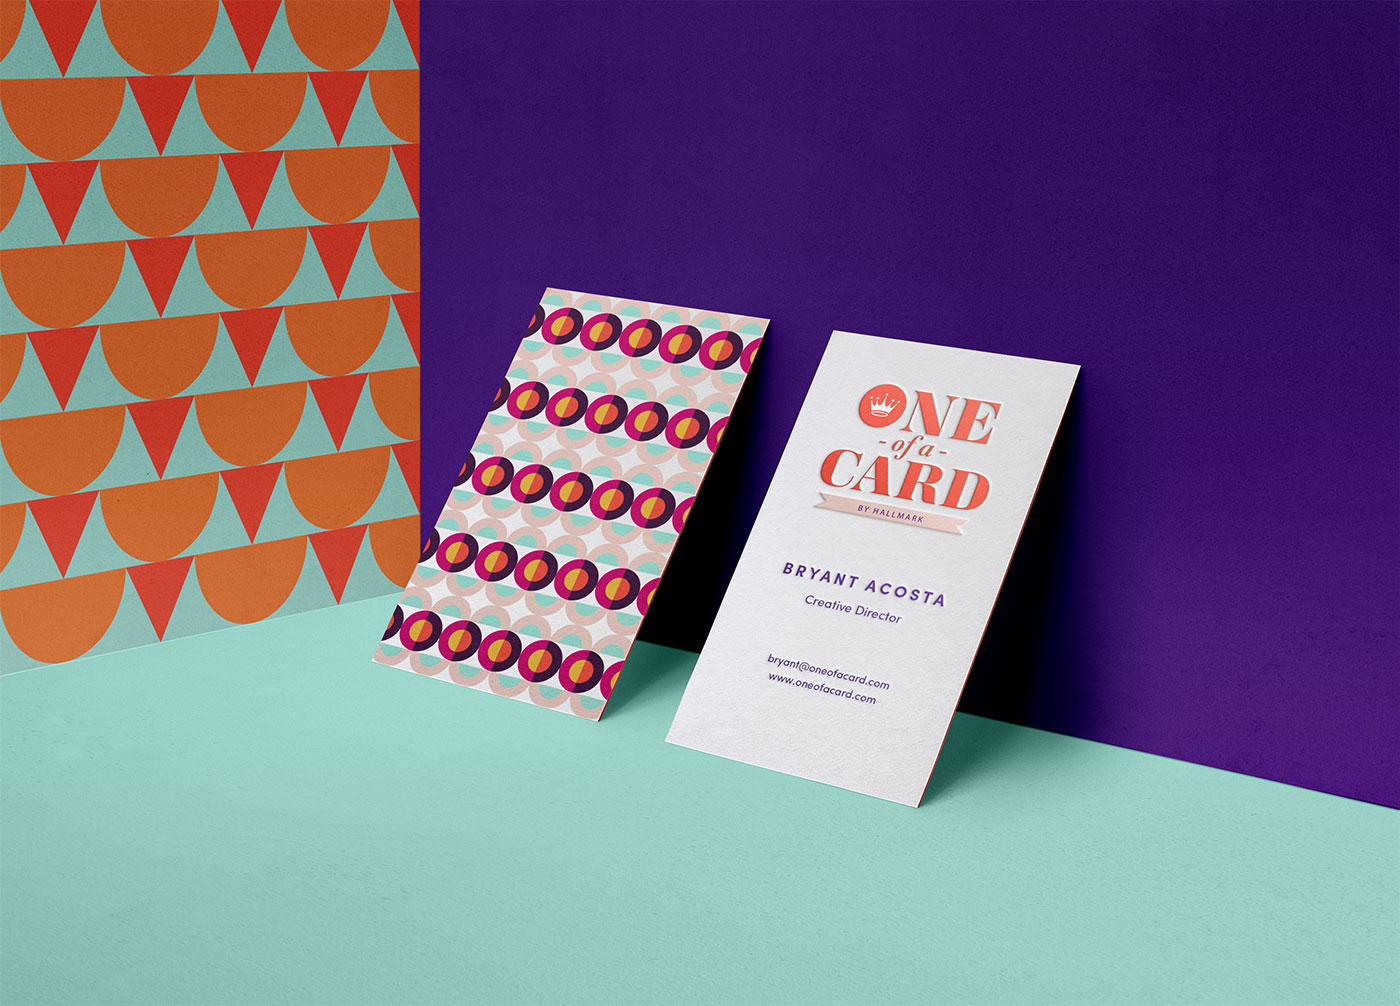 Outfit Branding & Design One of a Card Business Cards